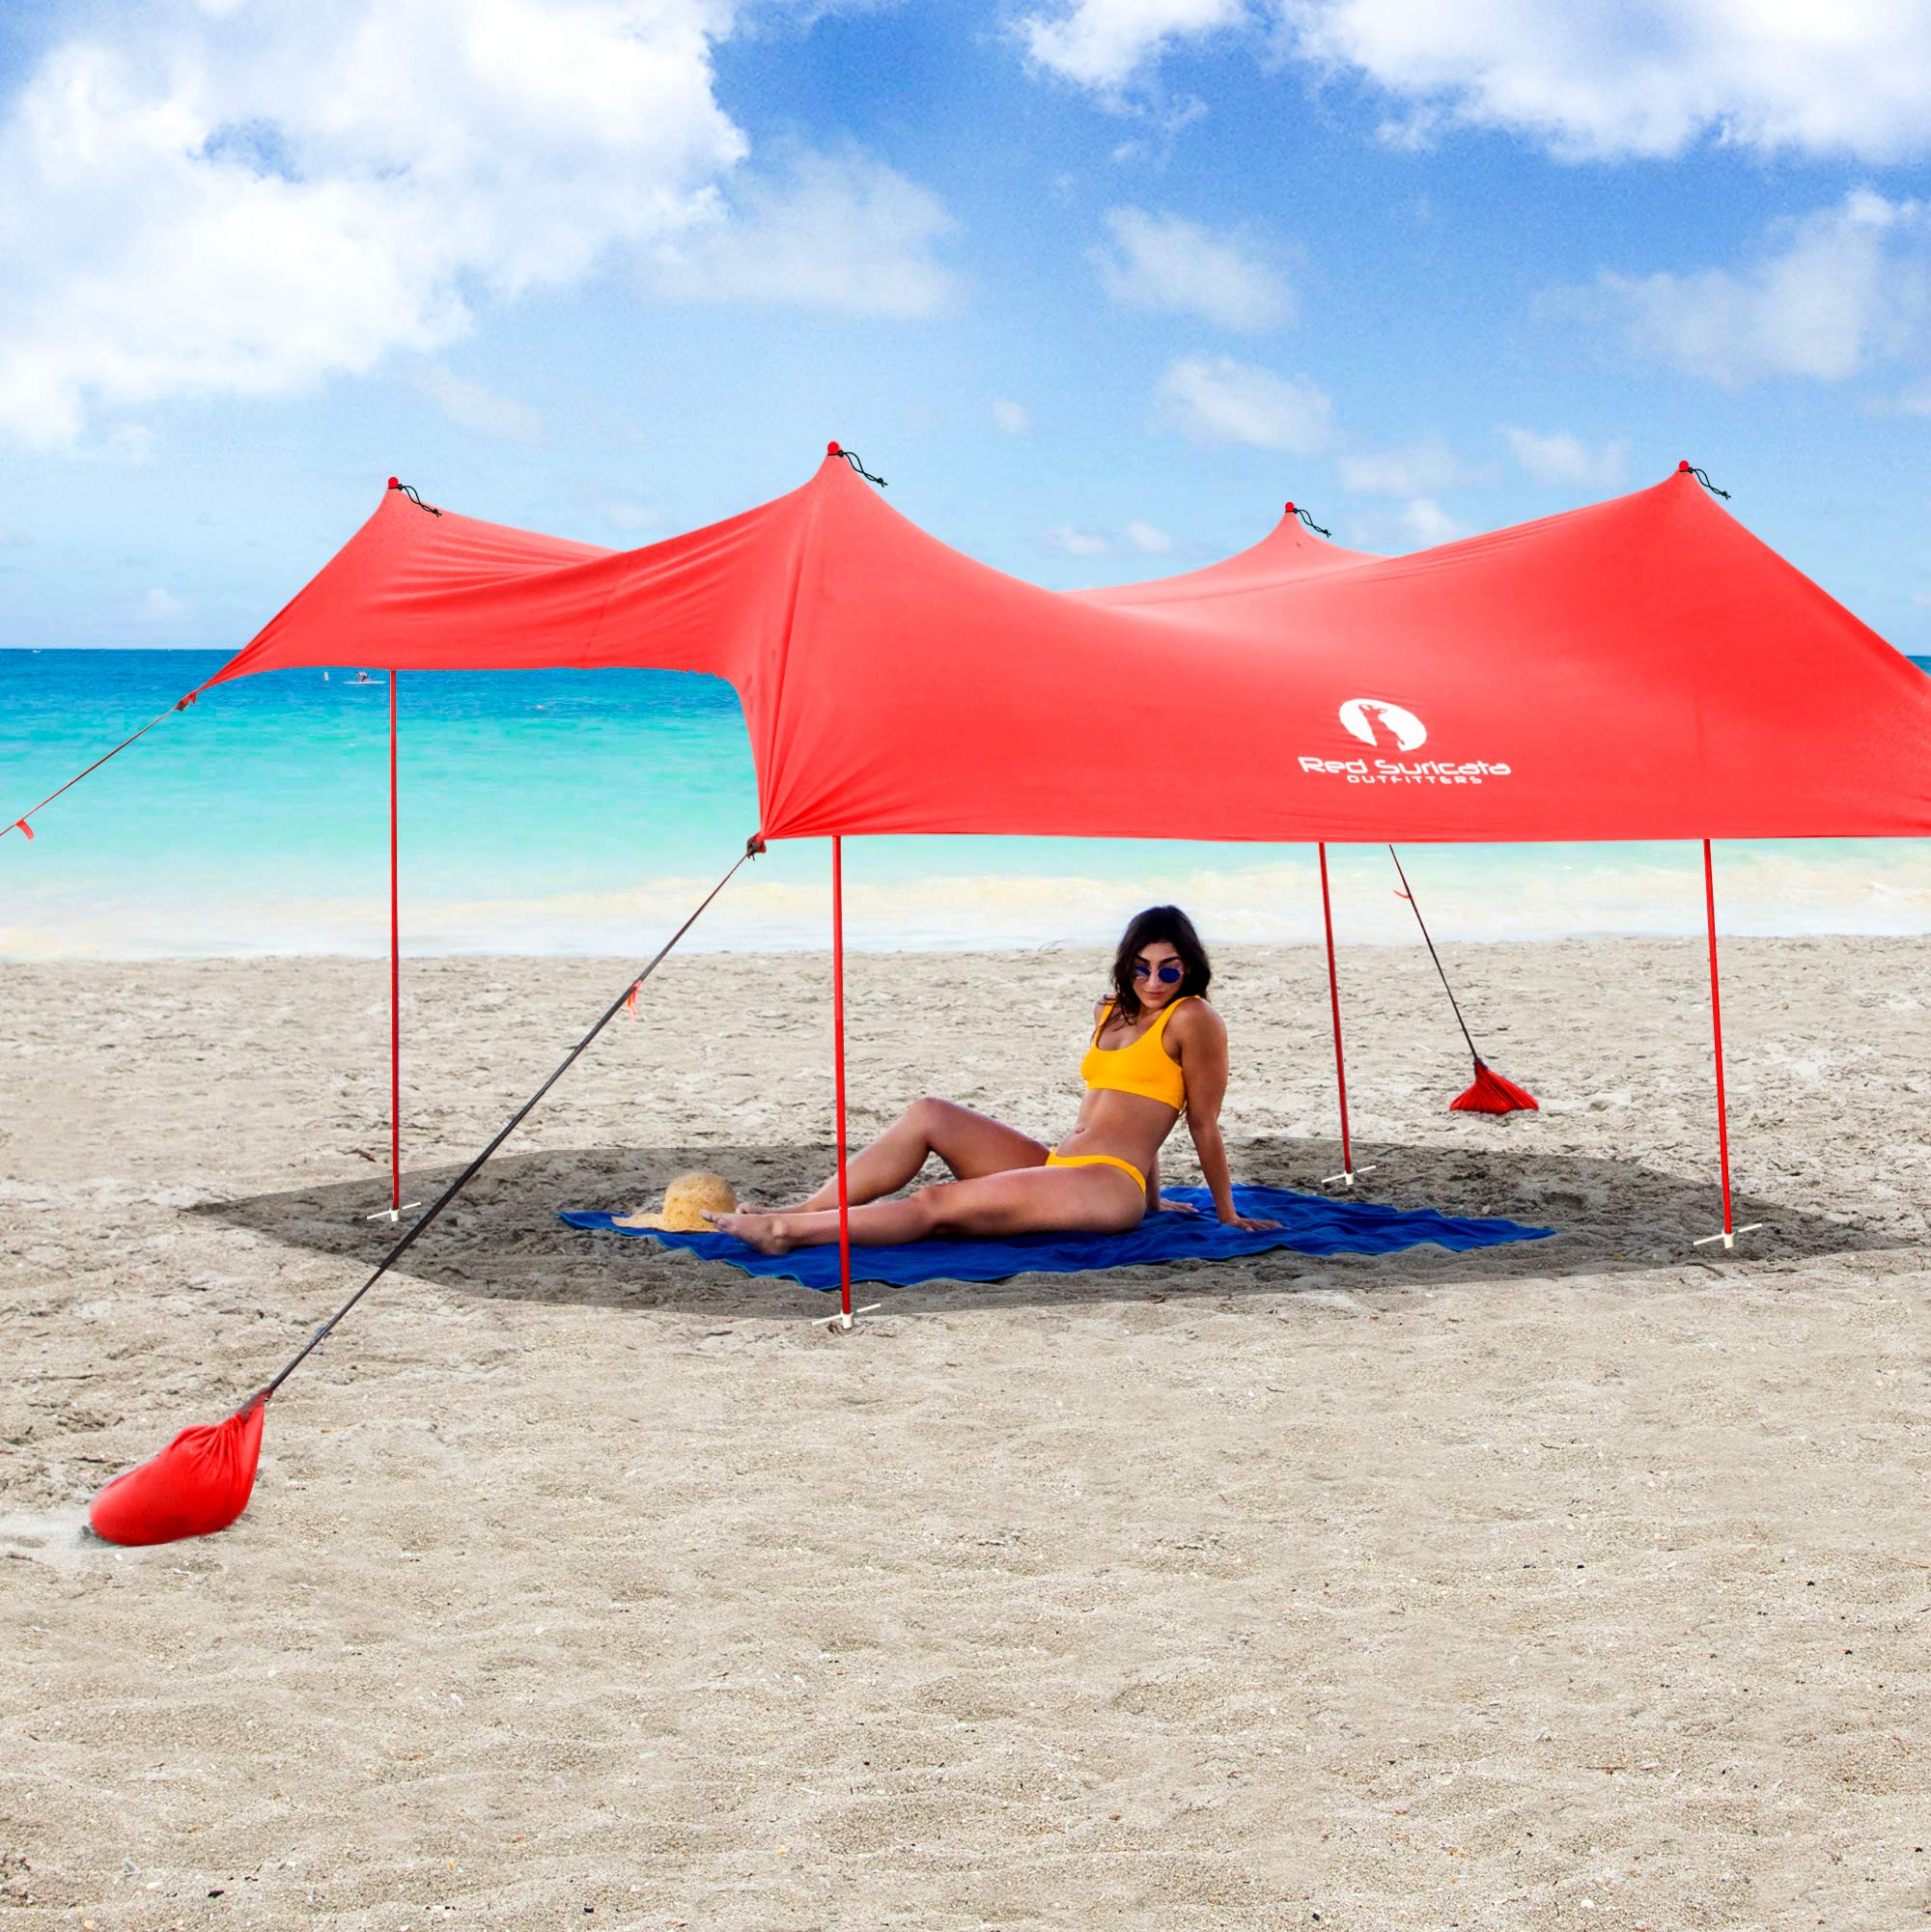 Red Suricata Family Beach Sunshade - Sun Shade Canopy | UPF50 UV Protection | Tent with 4 Aluminum Poles, 4 Pole Anchors, 4 Sandbag Anchors | Large & Portable Shelter Tarp (Red, Medium) by Red Suricata